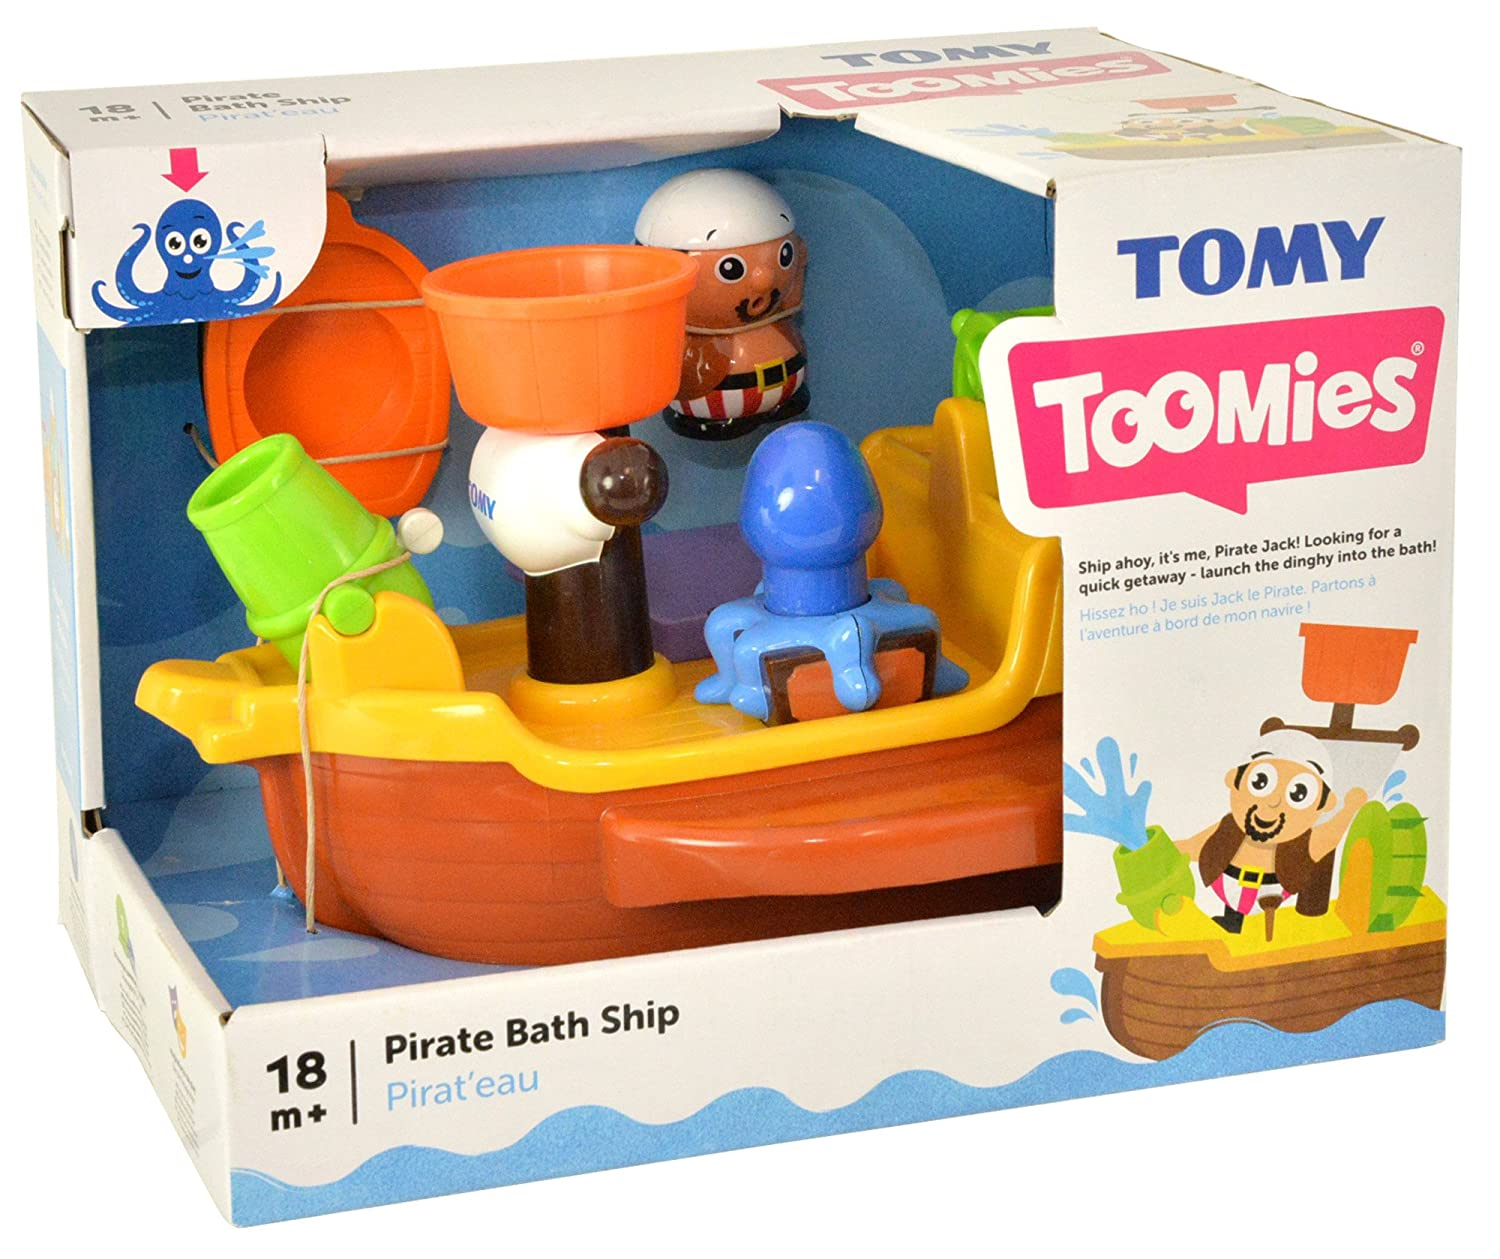 Amazon.com: Toomies Pirate Ship Bath Toy: Toys & Games